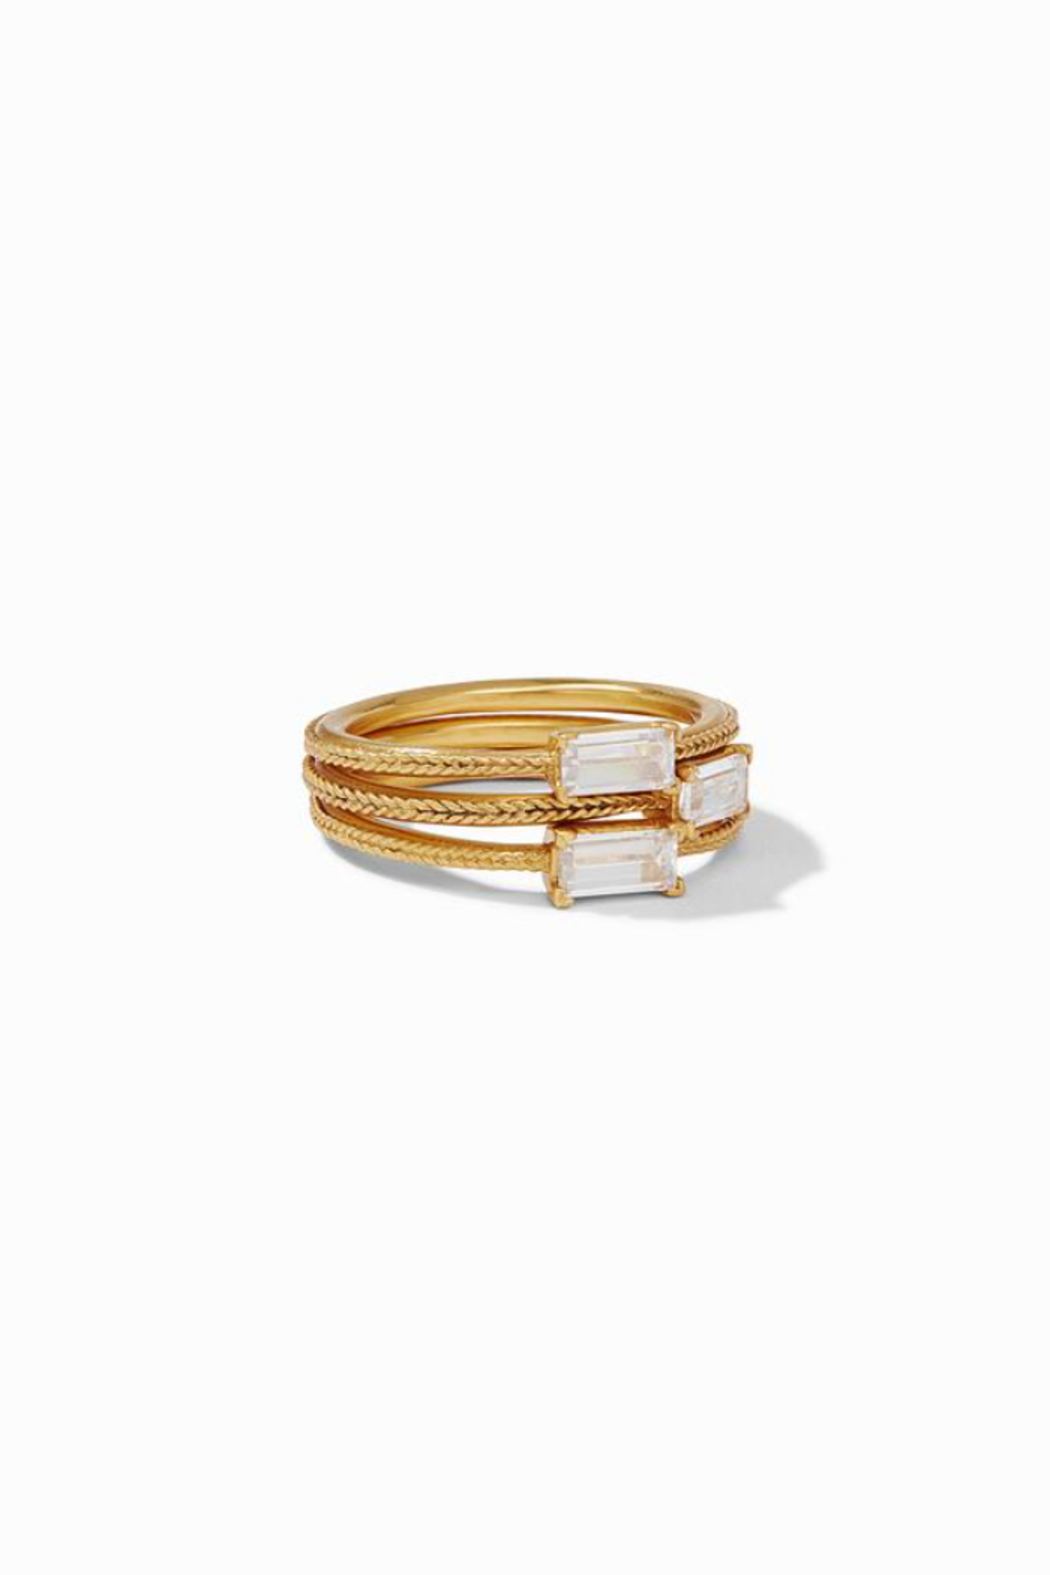 Julie Vos  Windsor Trio Ring Gold Cubic Zirconia Size 6 - Main Image